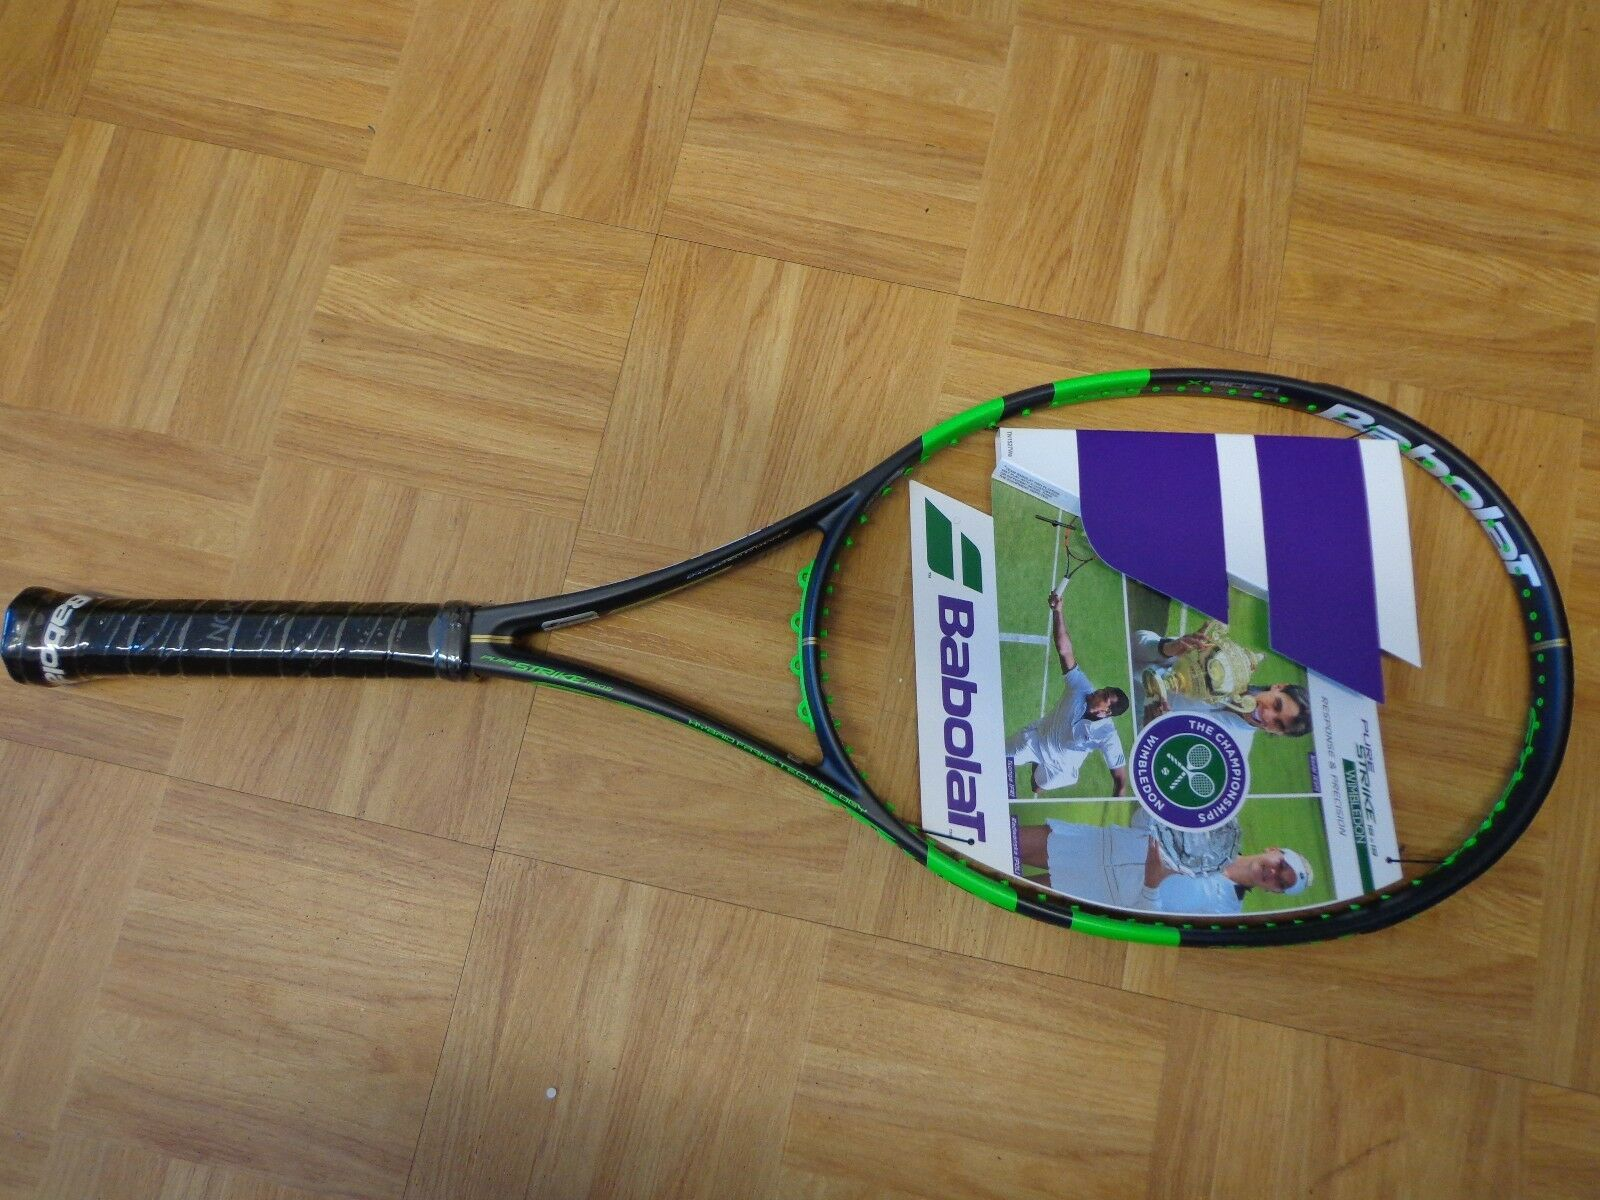 NEW Babolat Pure Strike Wimbledon 98 head 16x19 4 5/8 grip Tennis Racquet